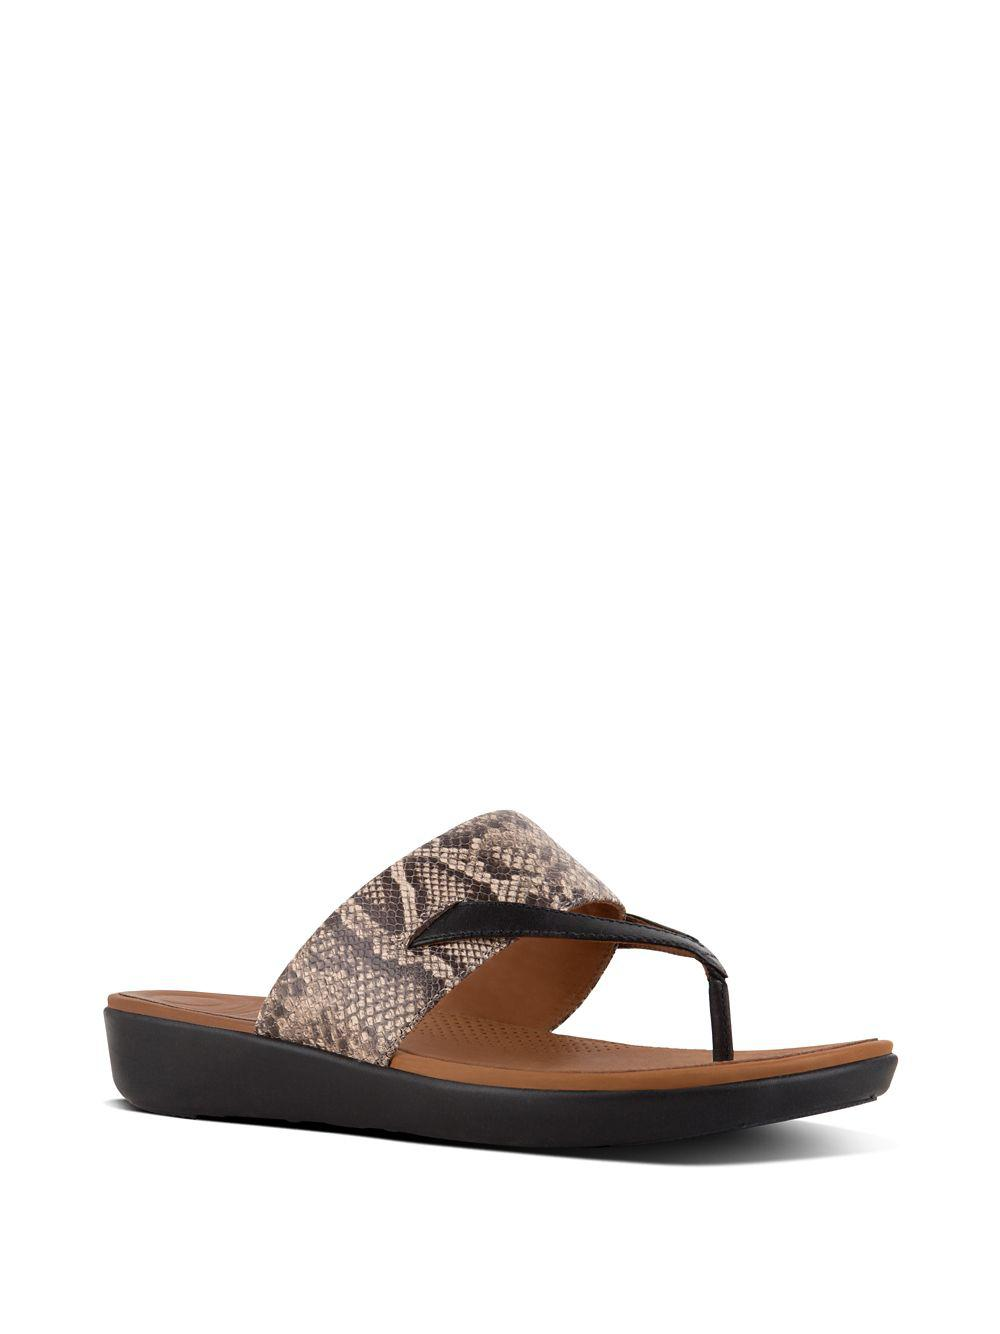 a17f5e80f5e8 Fitflop Deltatm Snake-print Leather Thong Sandals in Brown - Lyst